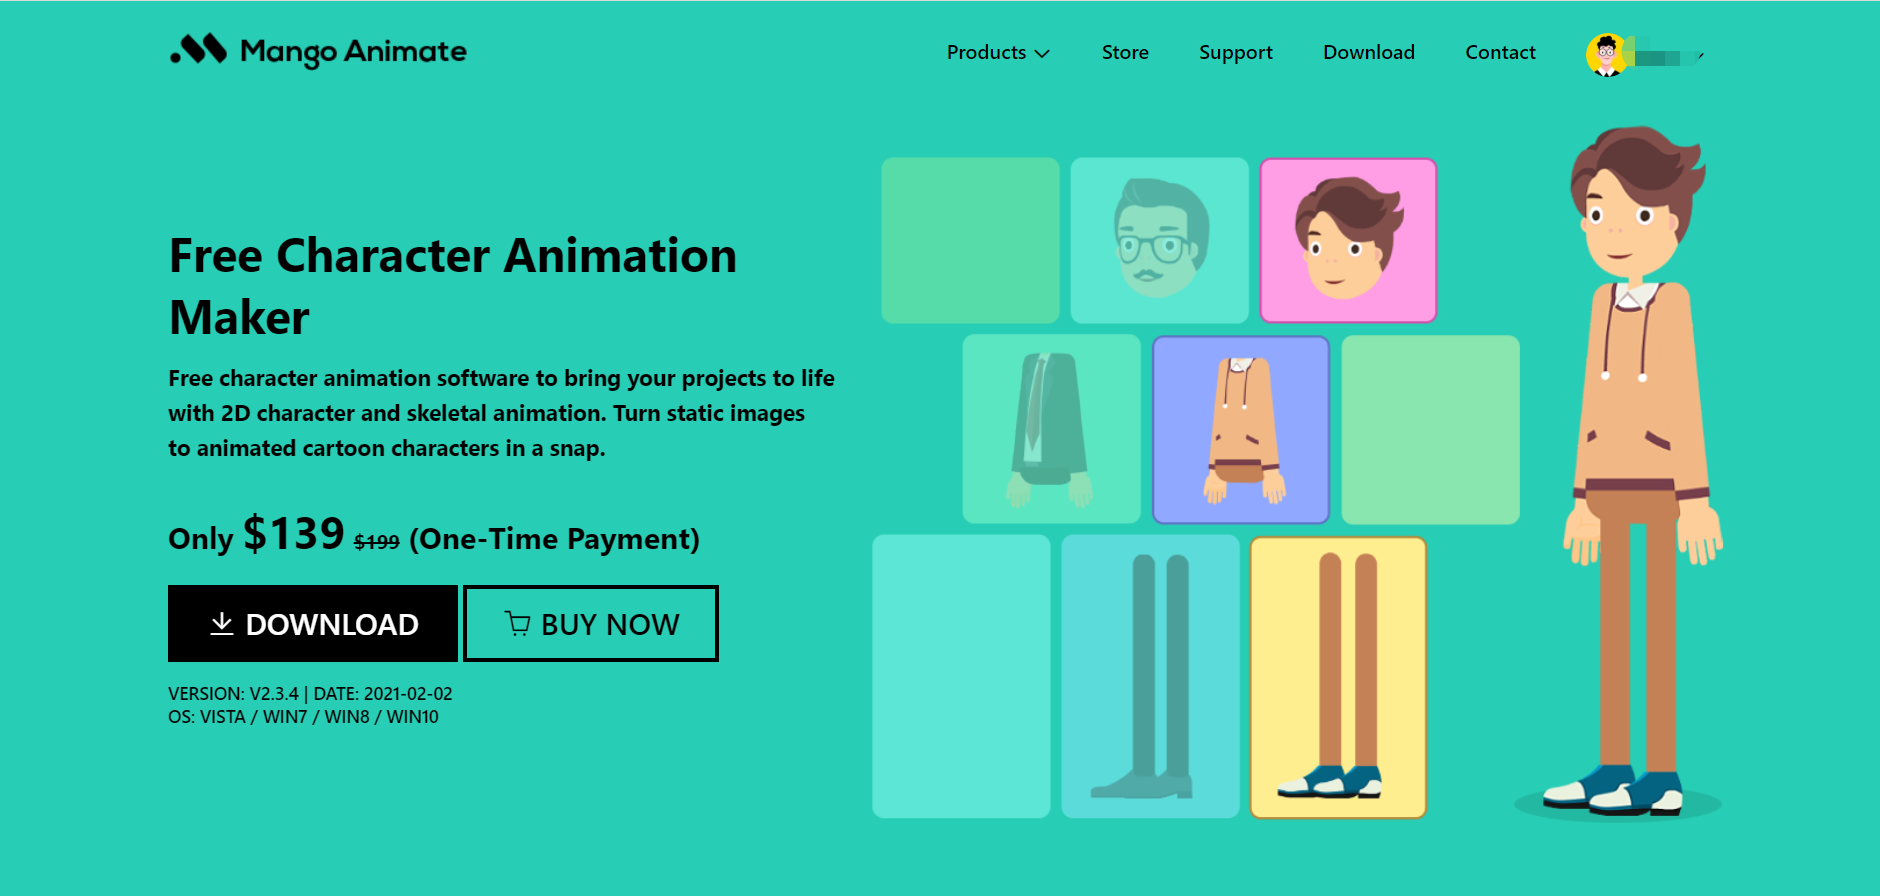 Build Characters With Mango Animate's Avatar Video Creator